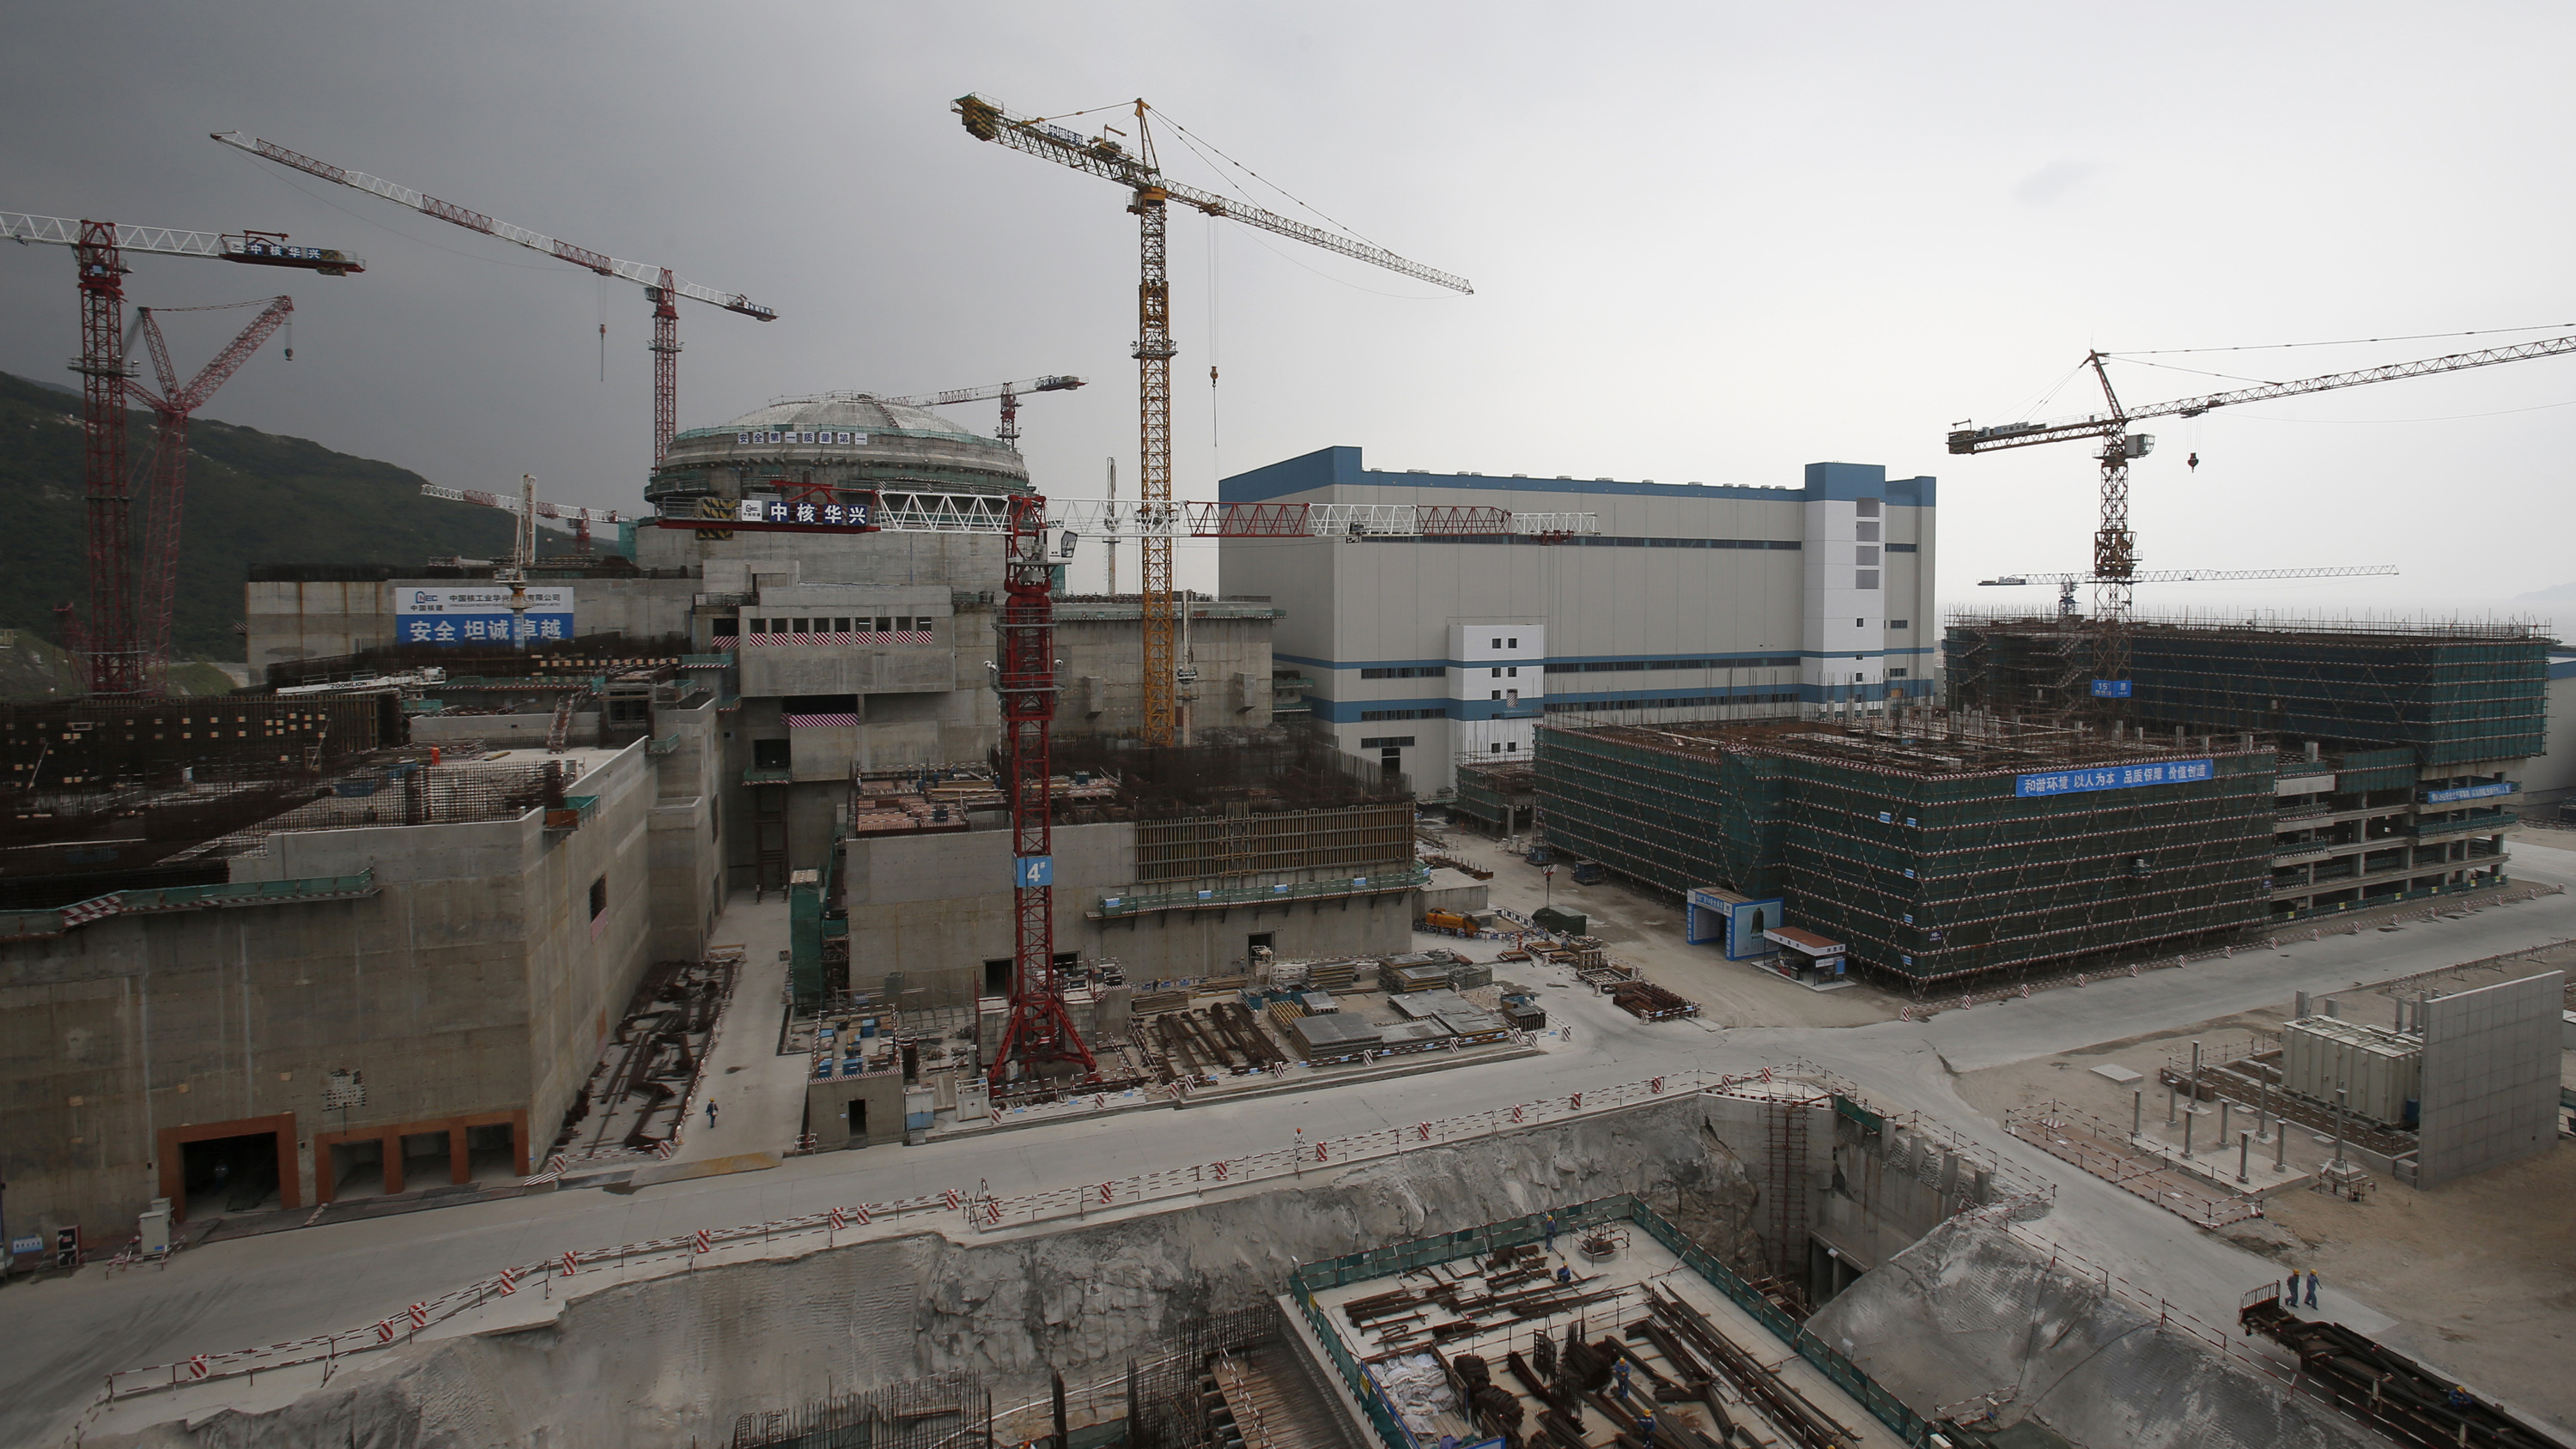 A nuclear reactor under construction in Taishan, China in 2013.